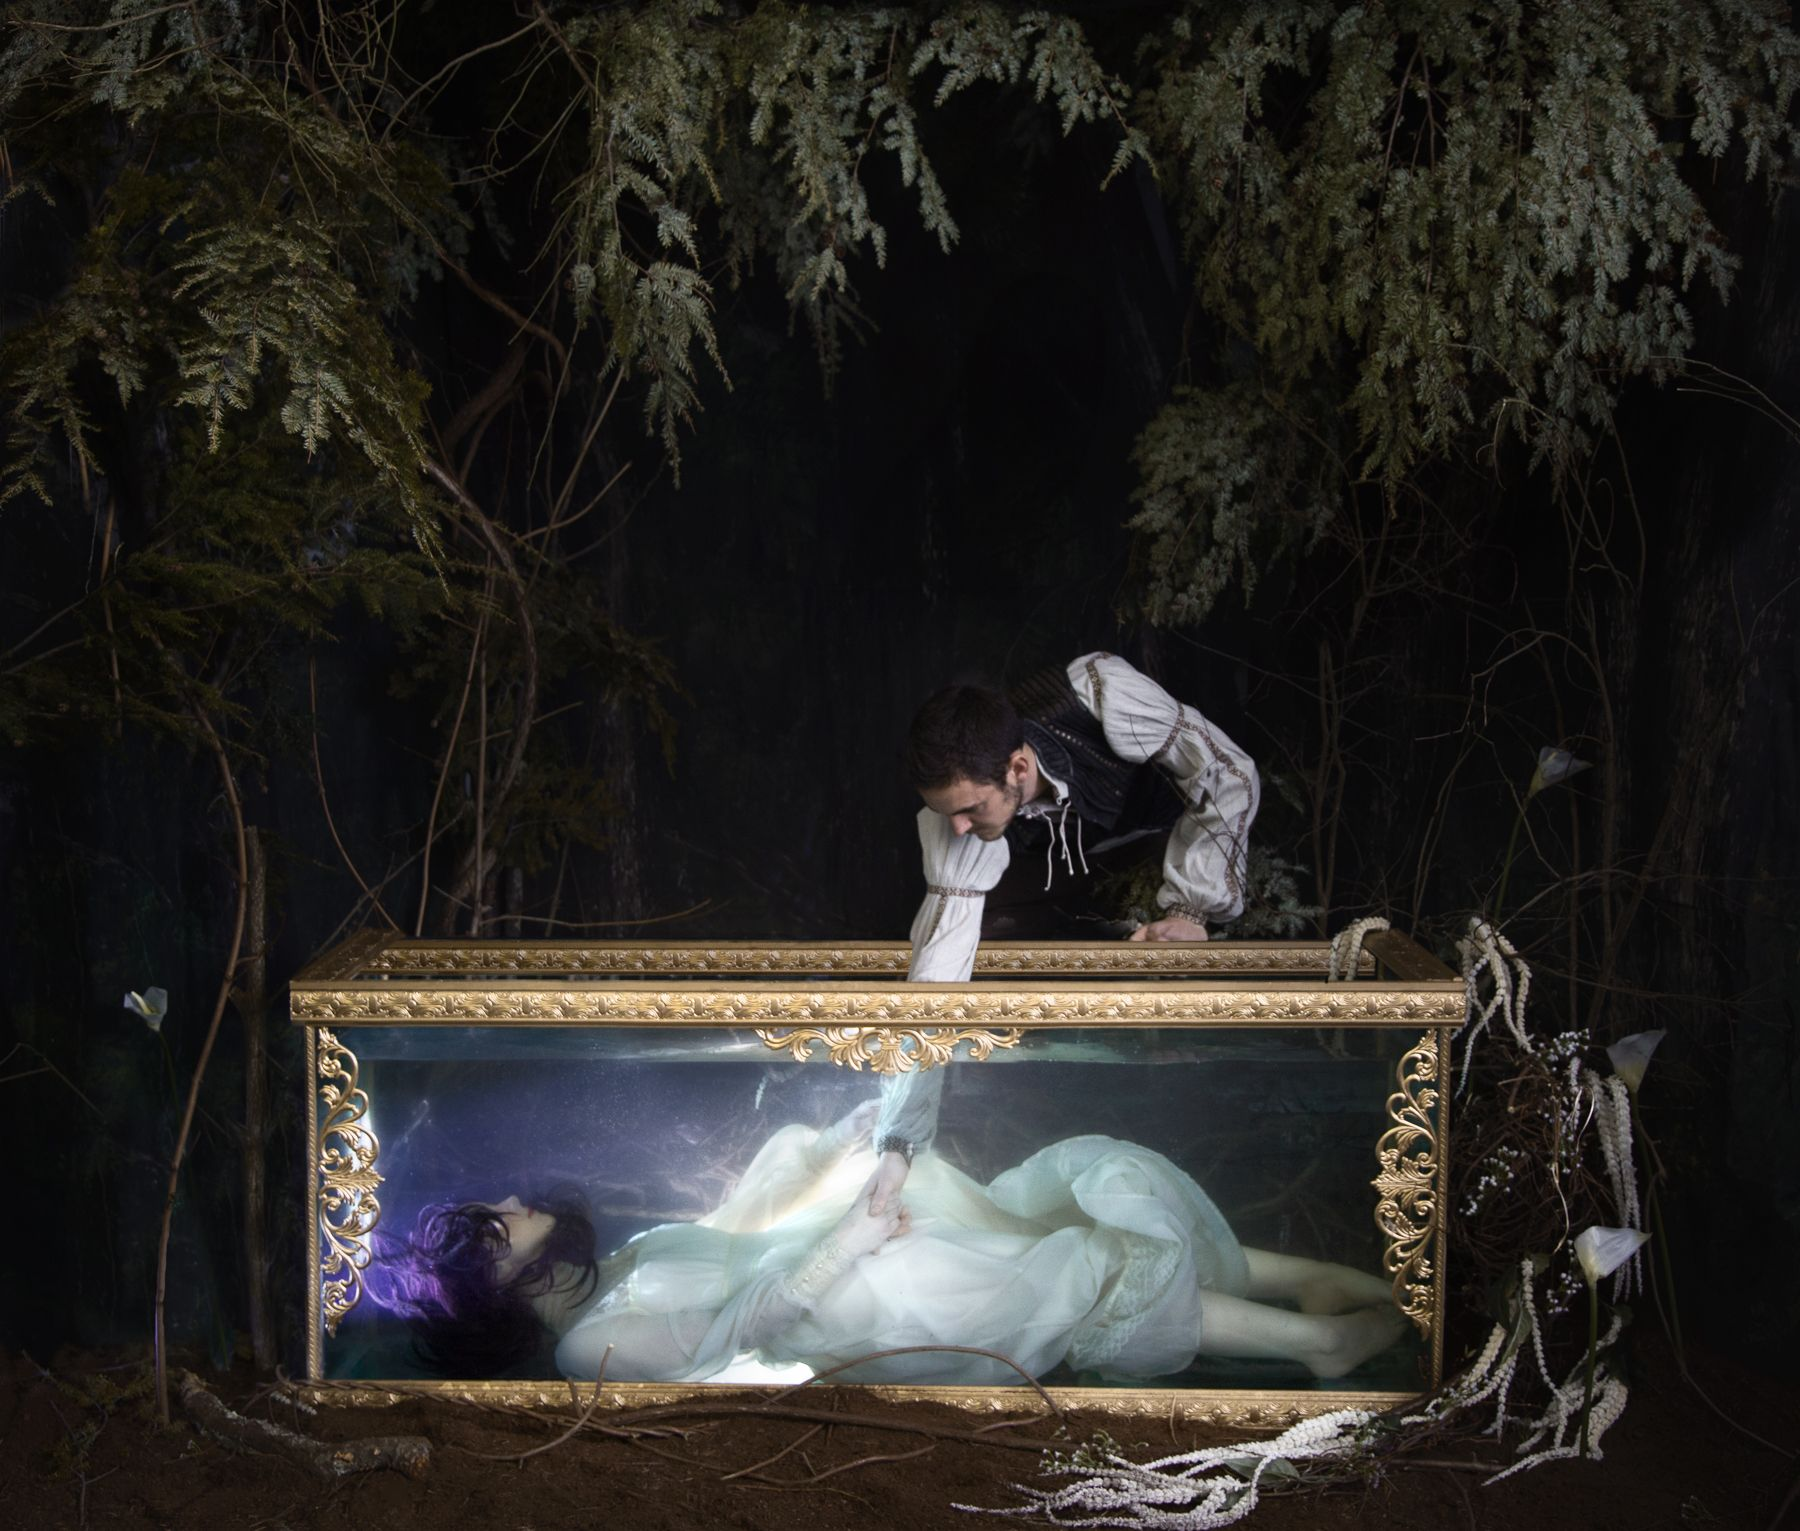 Photographer Adrien Broom Tackles The Snow White Mythology In New Photo Series